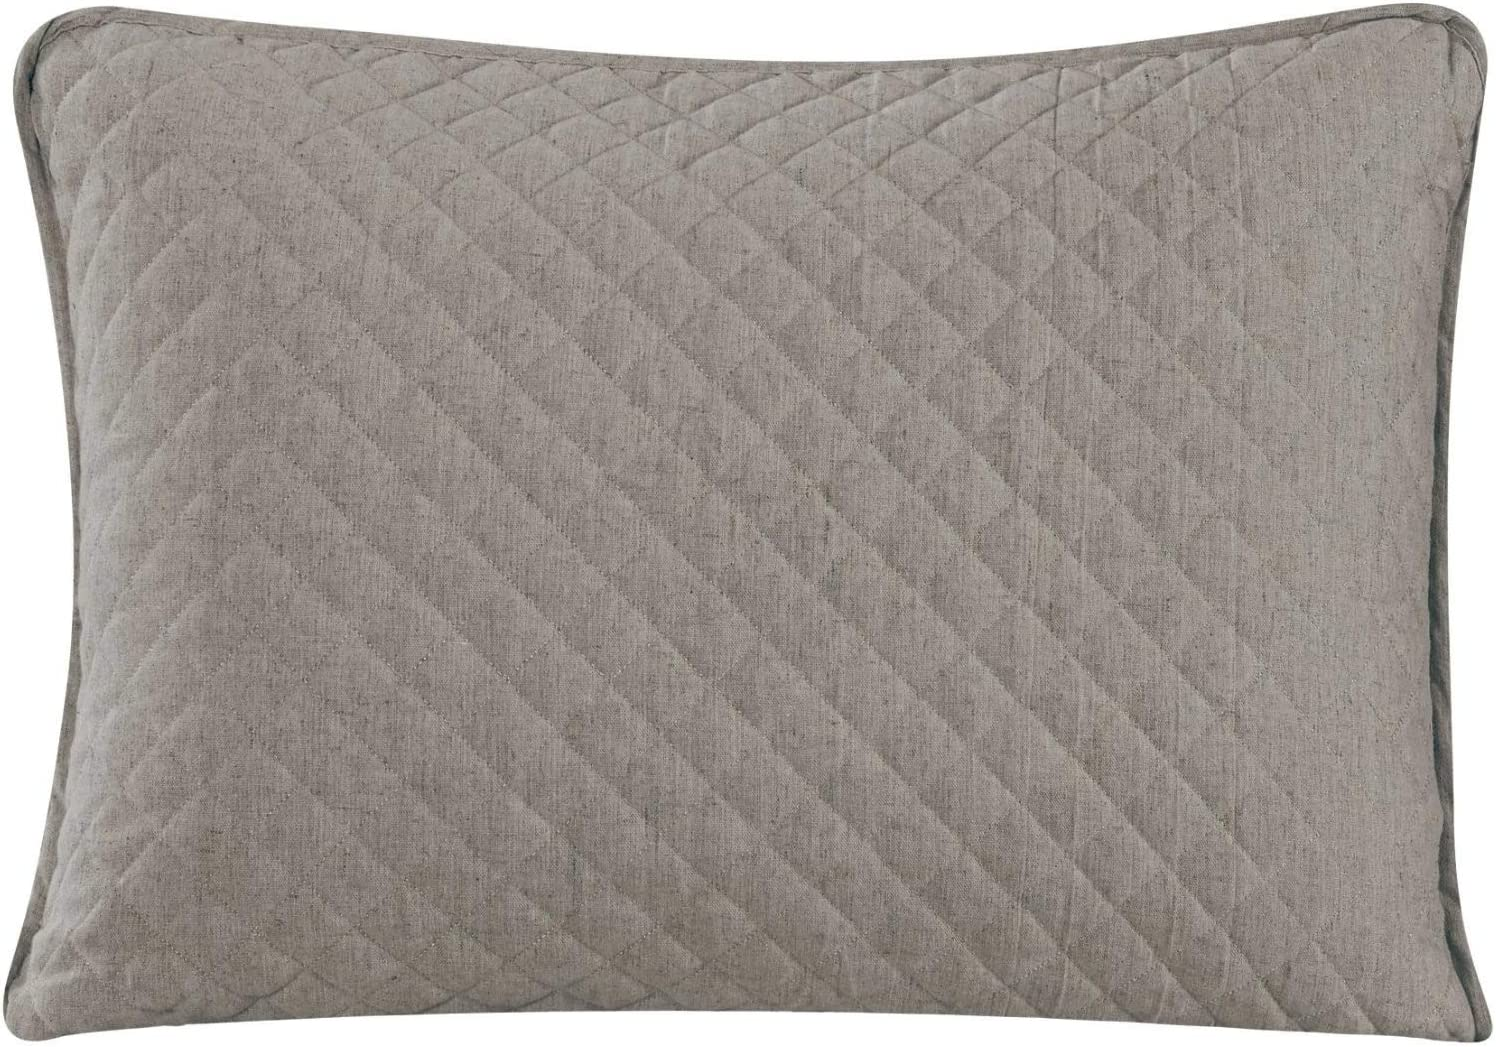 HiEnd Accents Pair of Anna King Free shipping on posting reviews 21x34 We OFFer at cheap prices Sham Taupe